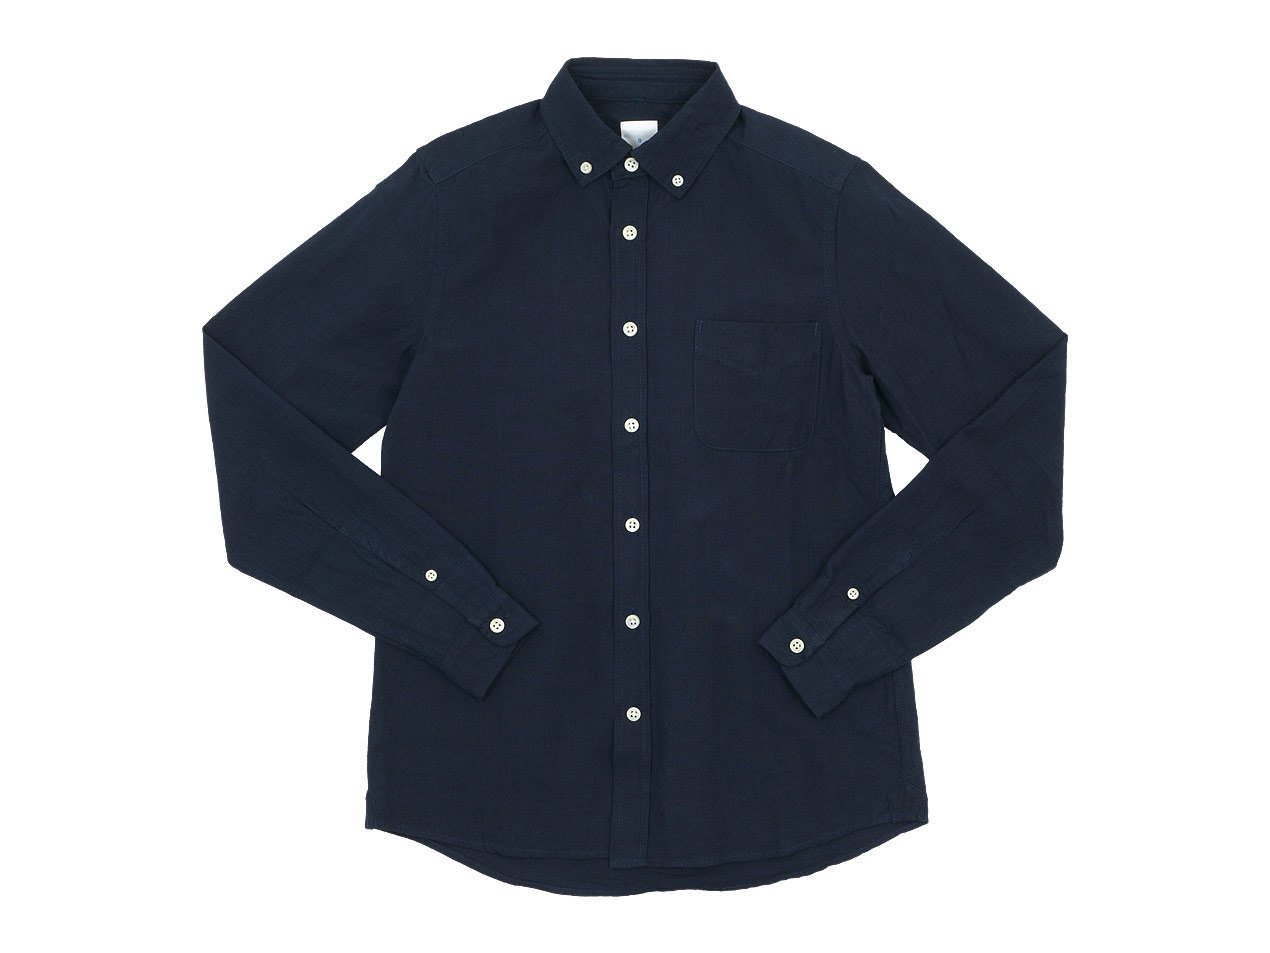 maillot sunset B.D. shirts / round work shirts